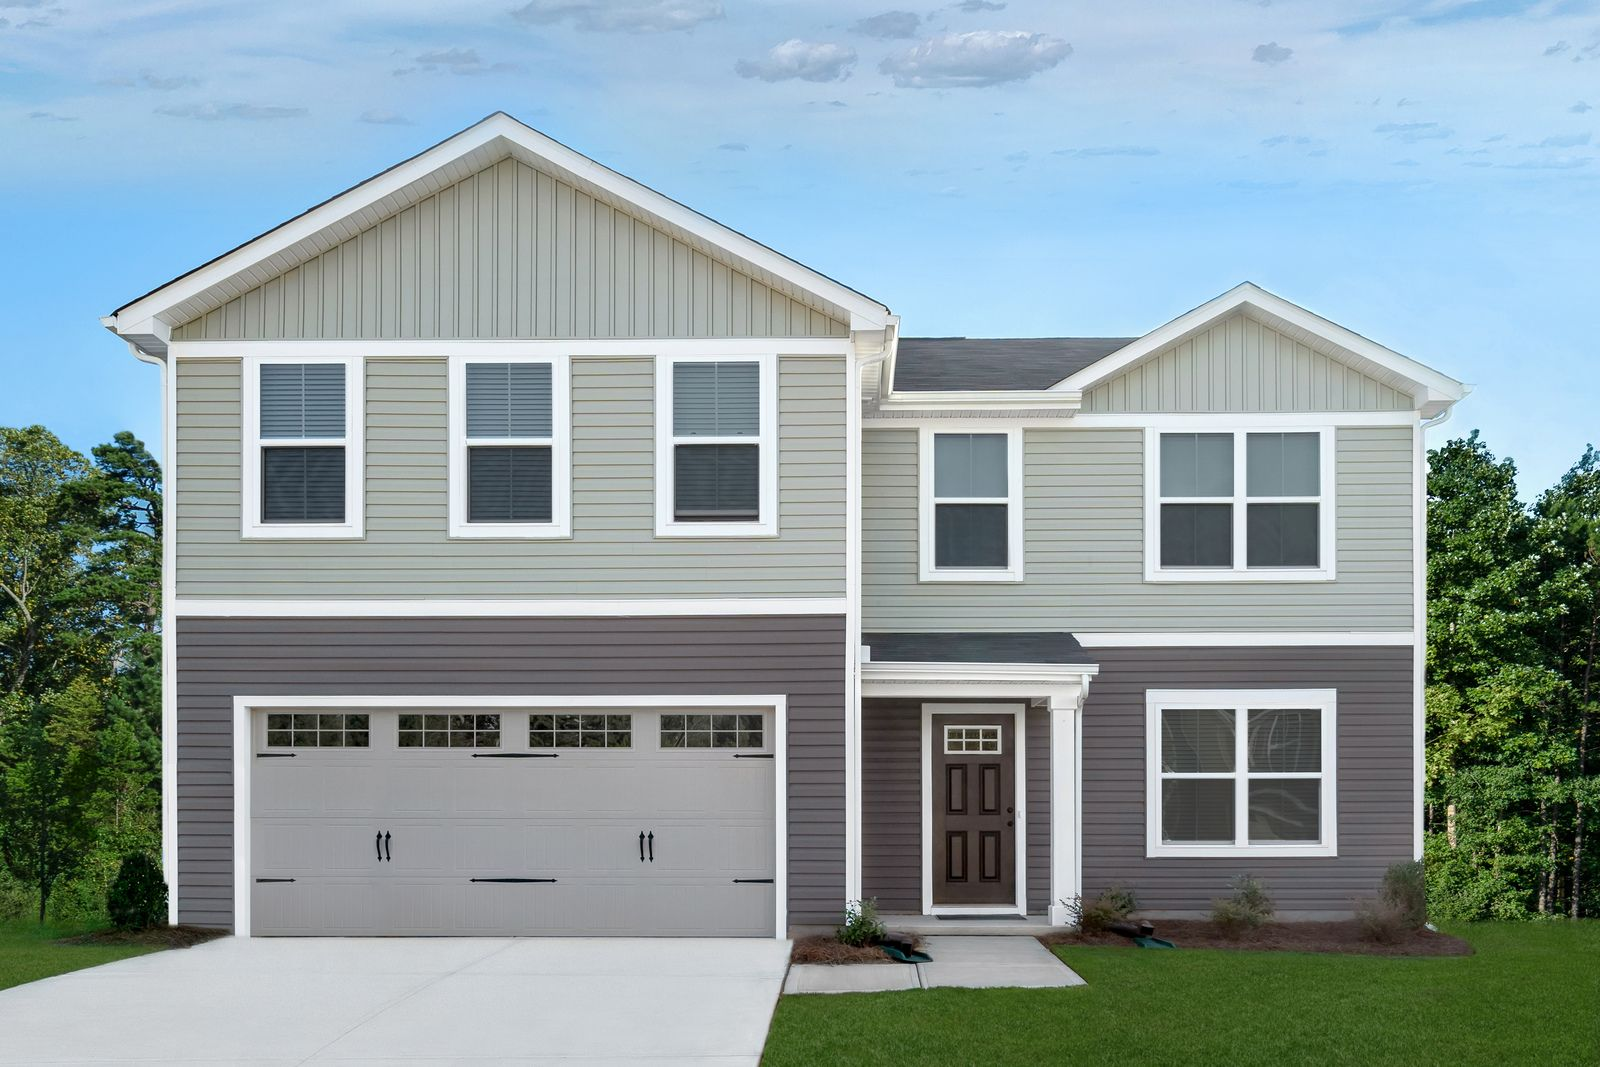 LOWEST-PRICED NEW HOMES IN CLARK-SHAWNEE SCHOOLS AT BRIDGEWATER:Best-priced new homes in Clark-Shawnee Schools. Brand new everything, up to 5 bedrooms, available basement, no money down options, & 6 mins to I-70! From $190s.Click here to schedule your visit!